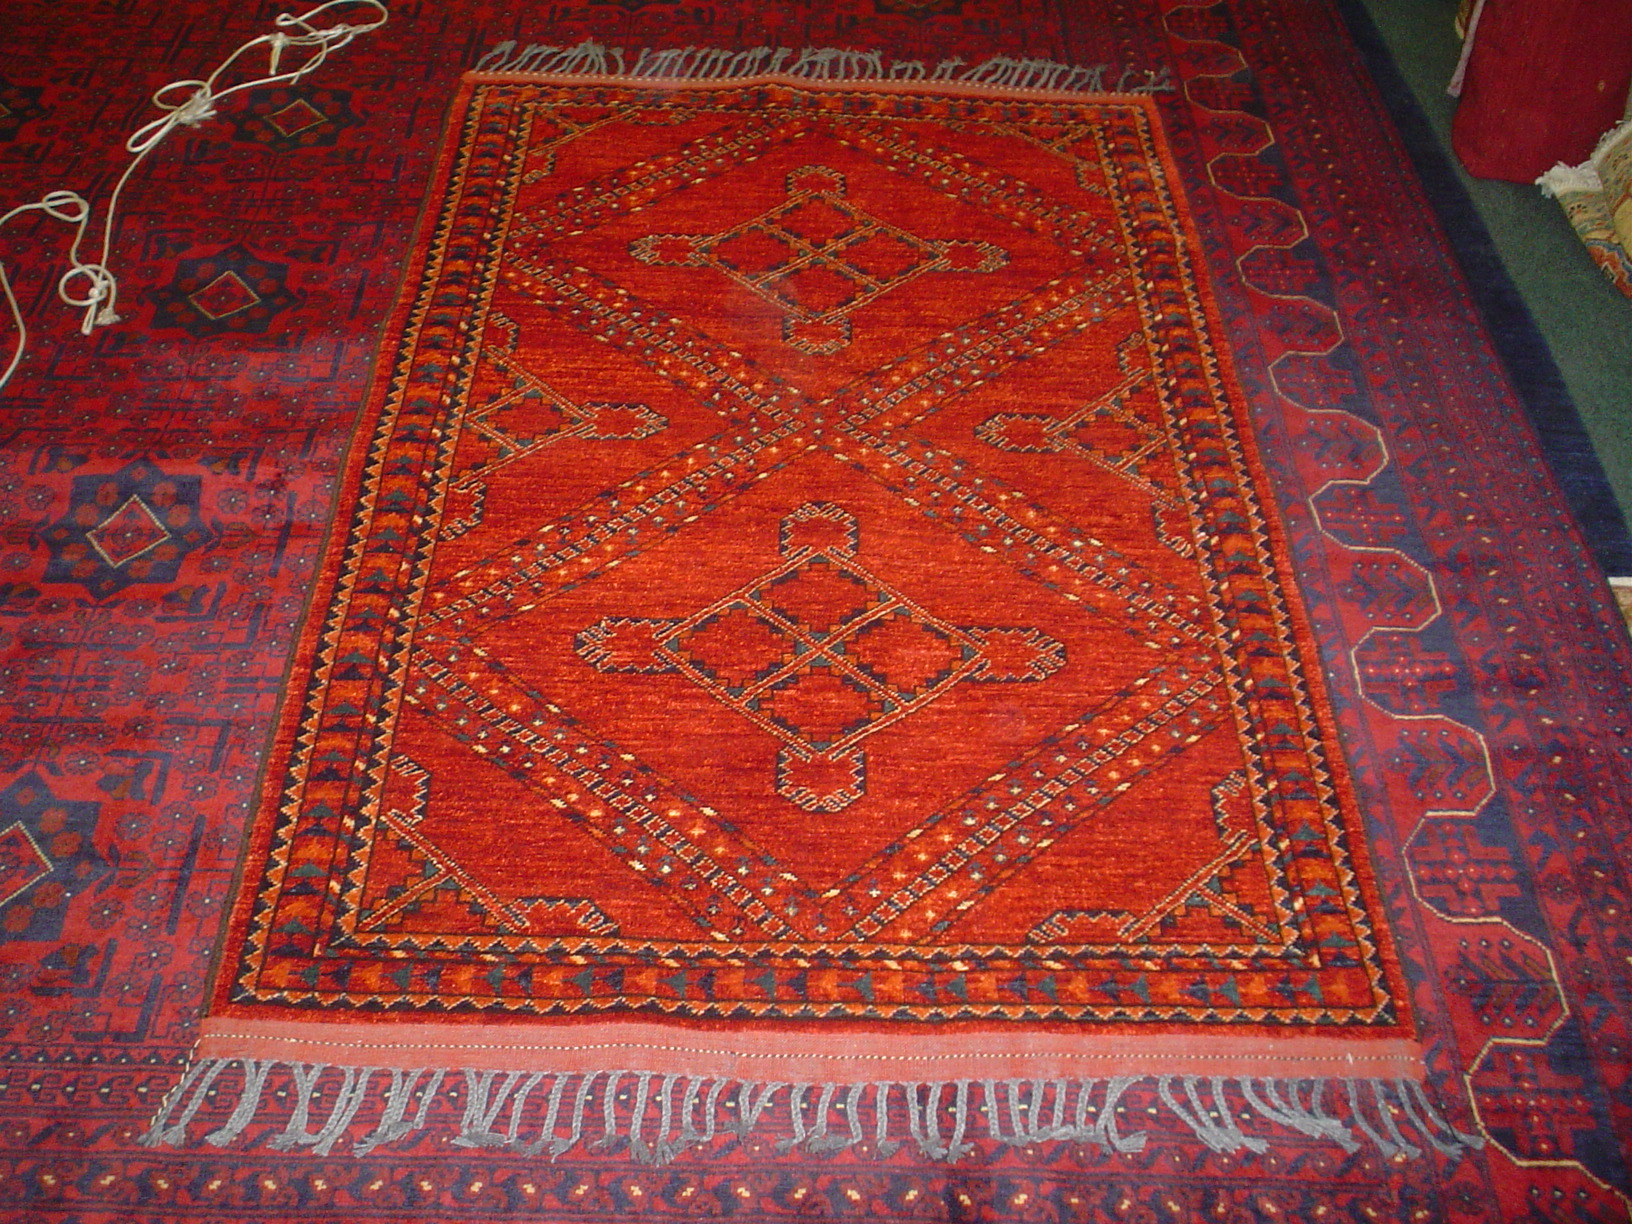 Amazing 4 x 6 Afghan rug. In and out in one day! Sold. Woven with all plant based vegetable dyes the red/orange colors and lovely diamond design with blue/green accents is fantastic.